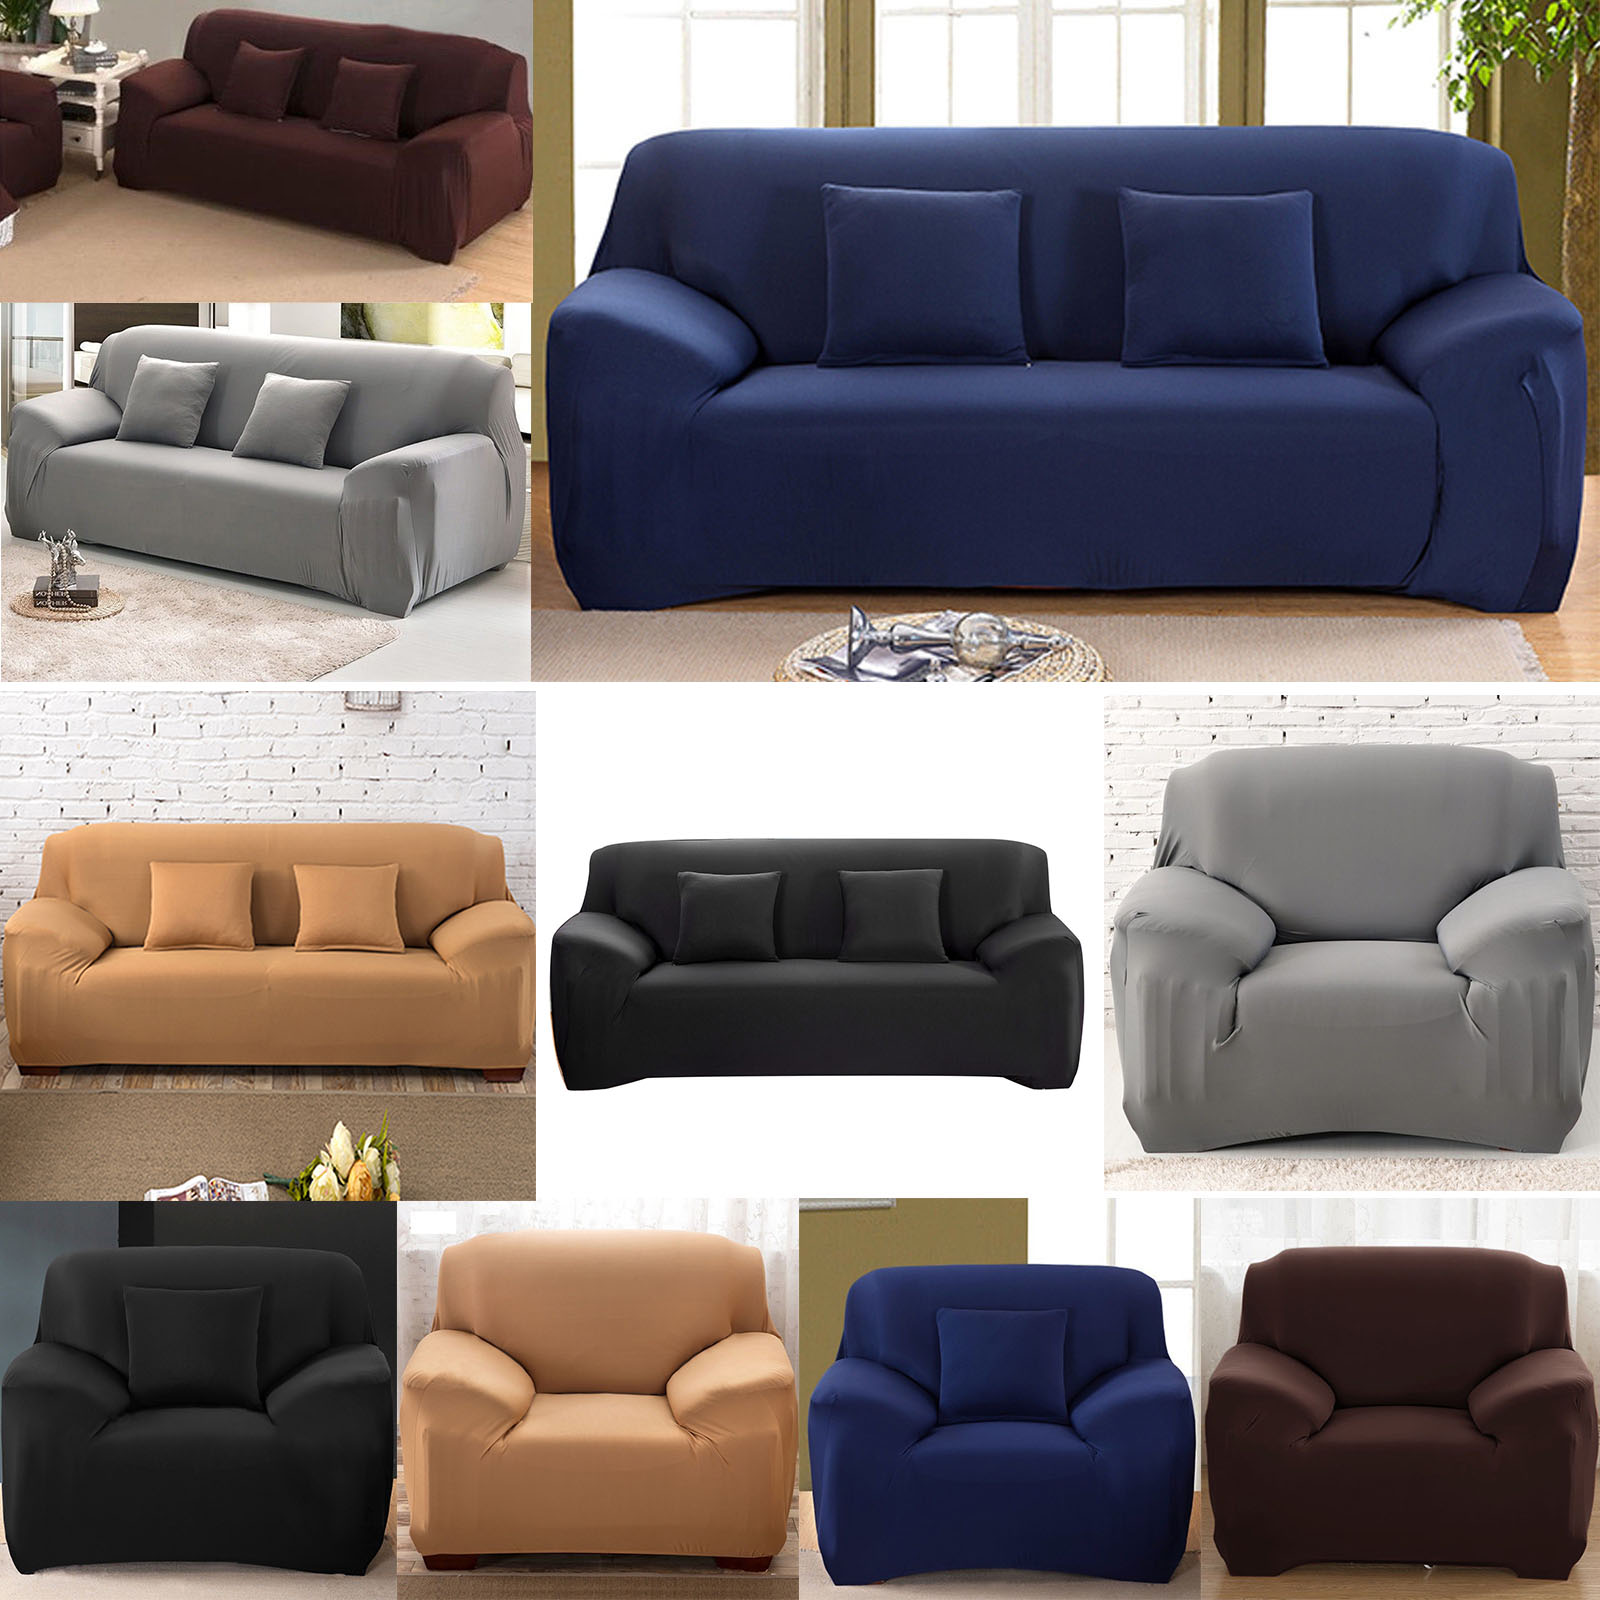 fit us couch seater itm slipcover removable with sofa cover stretch lounge washable